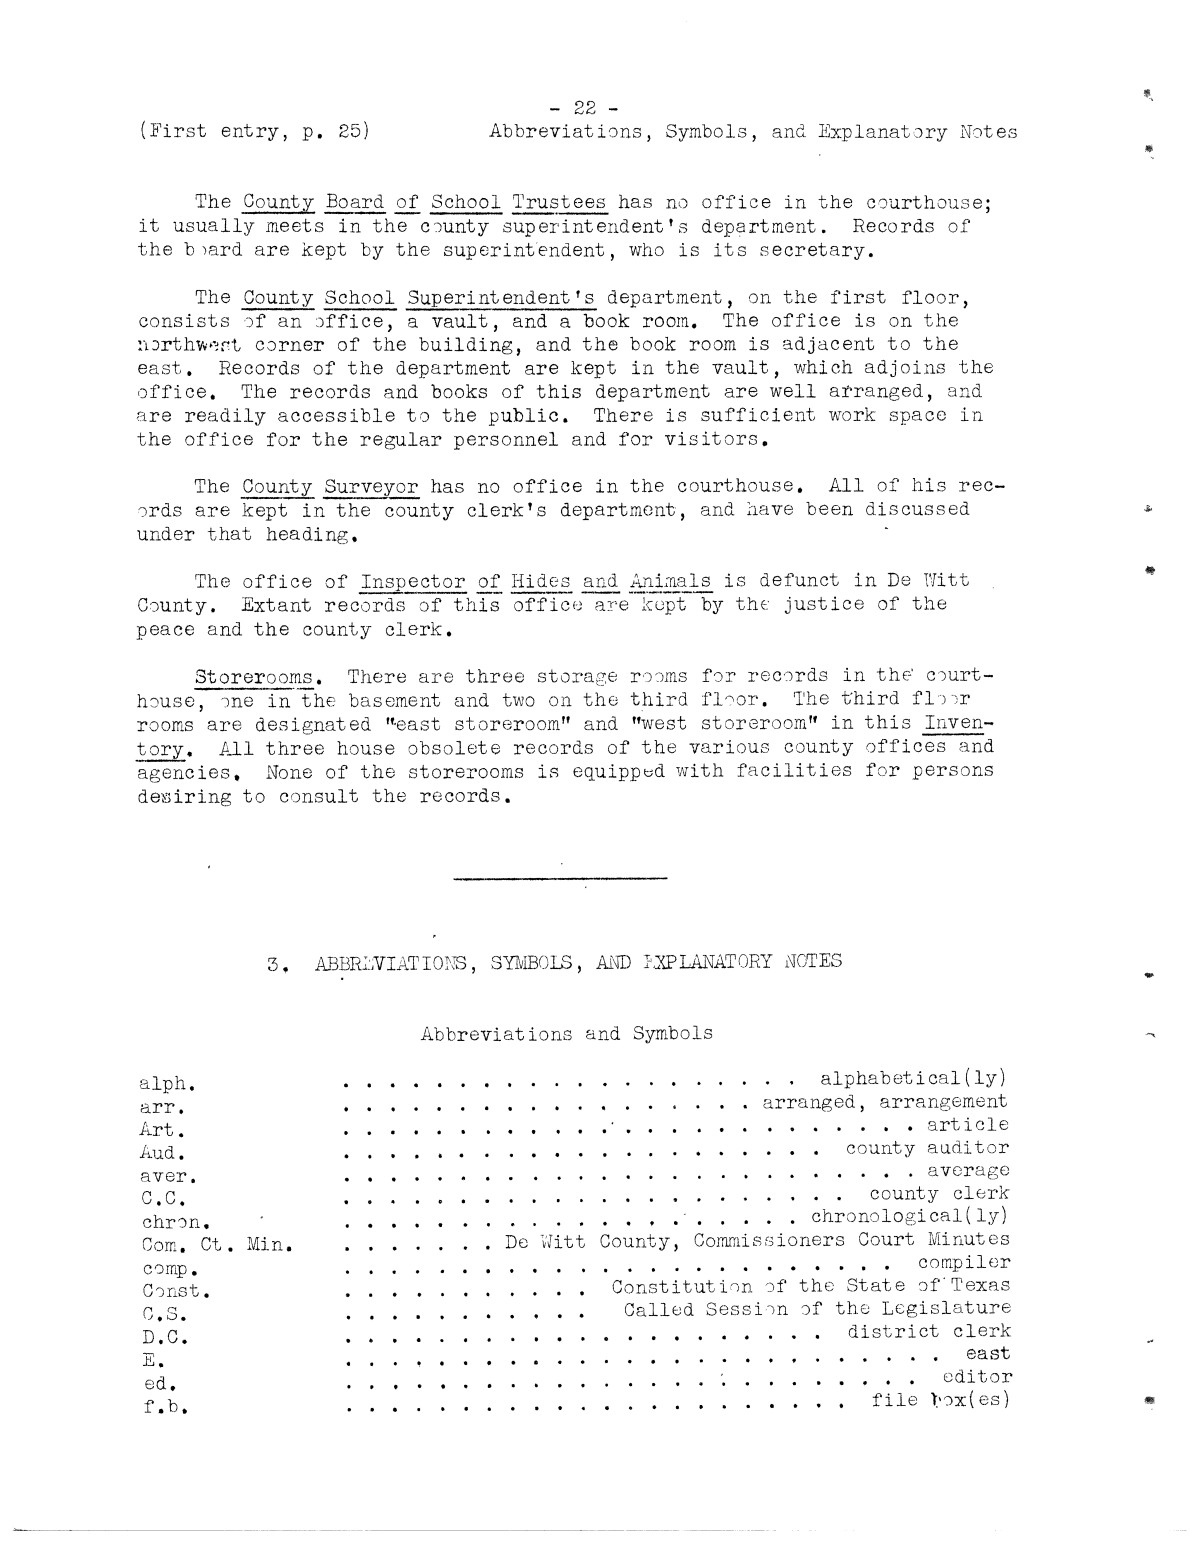 Inventory of the county archives of Texas : De Witt County, no. 62                                                                                                      22